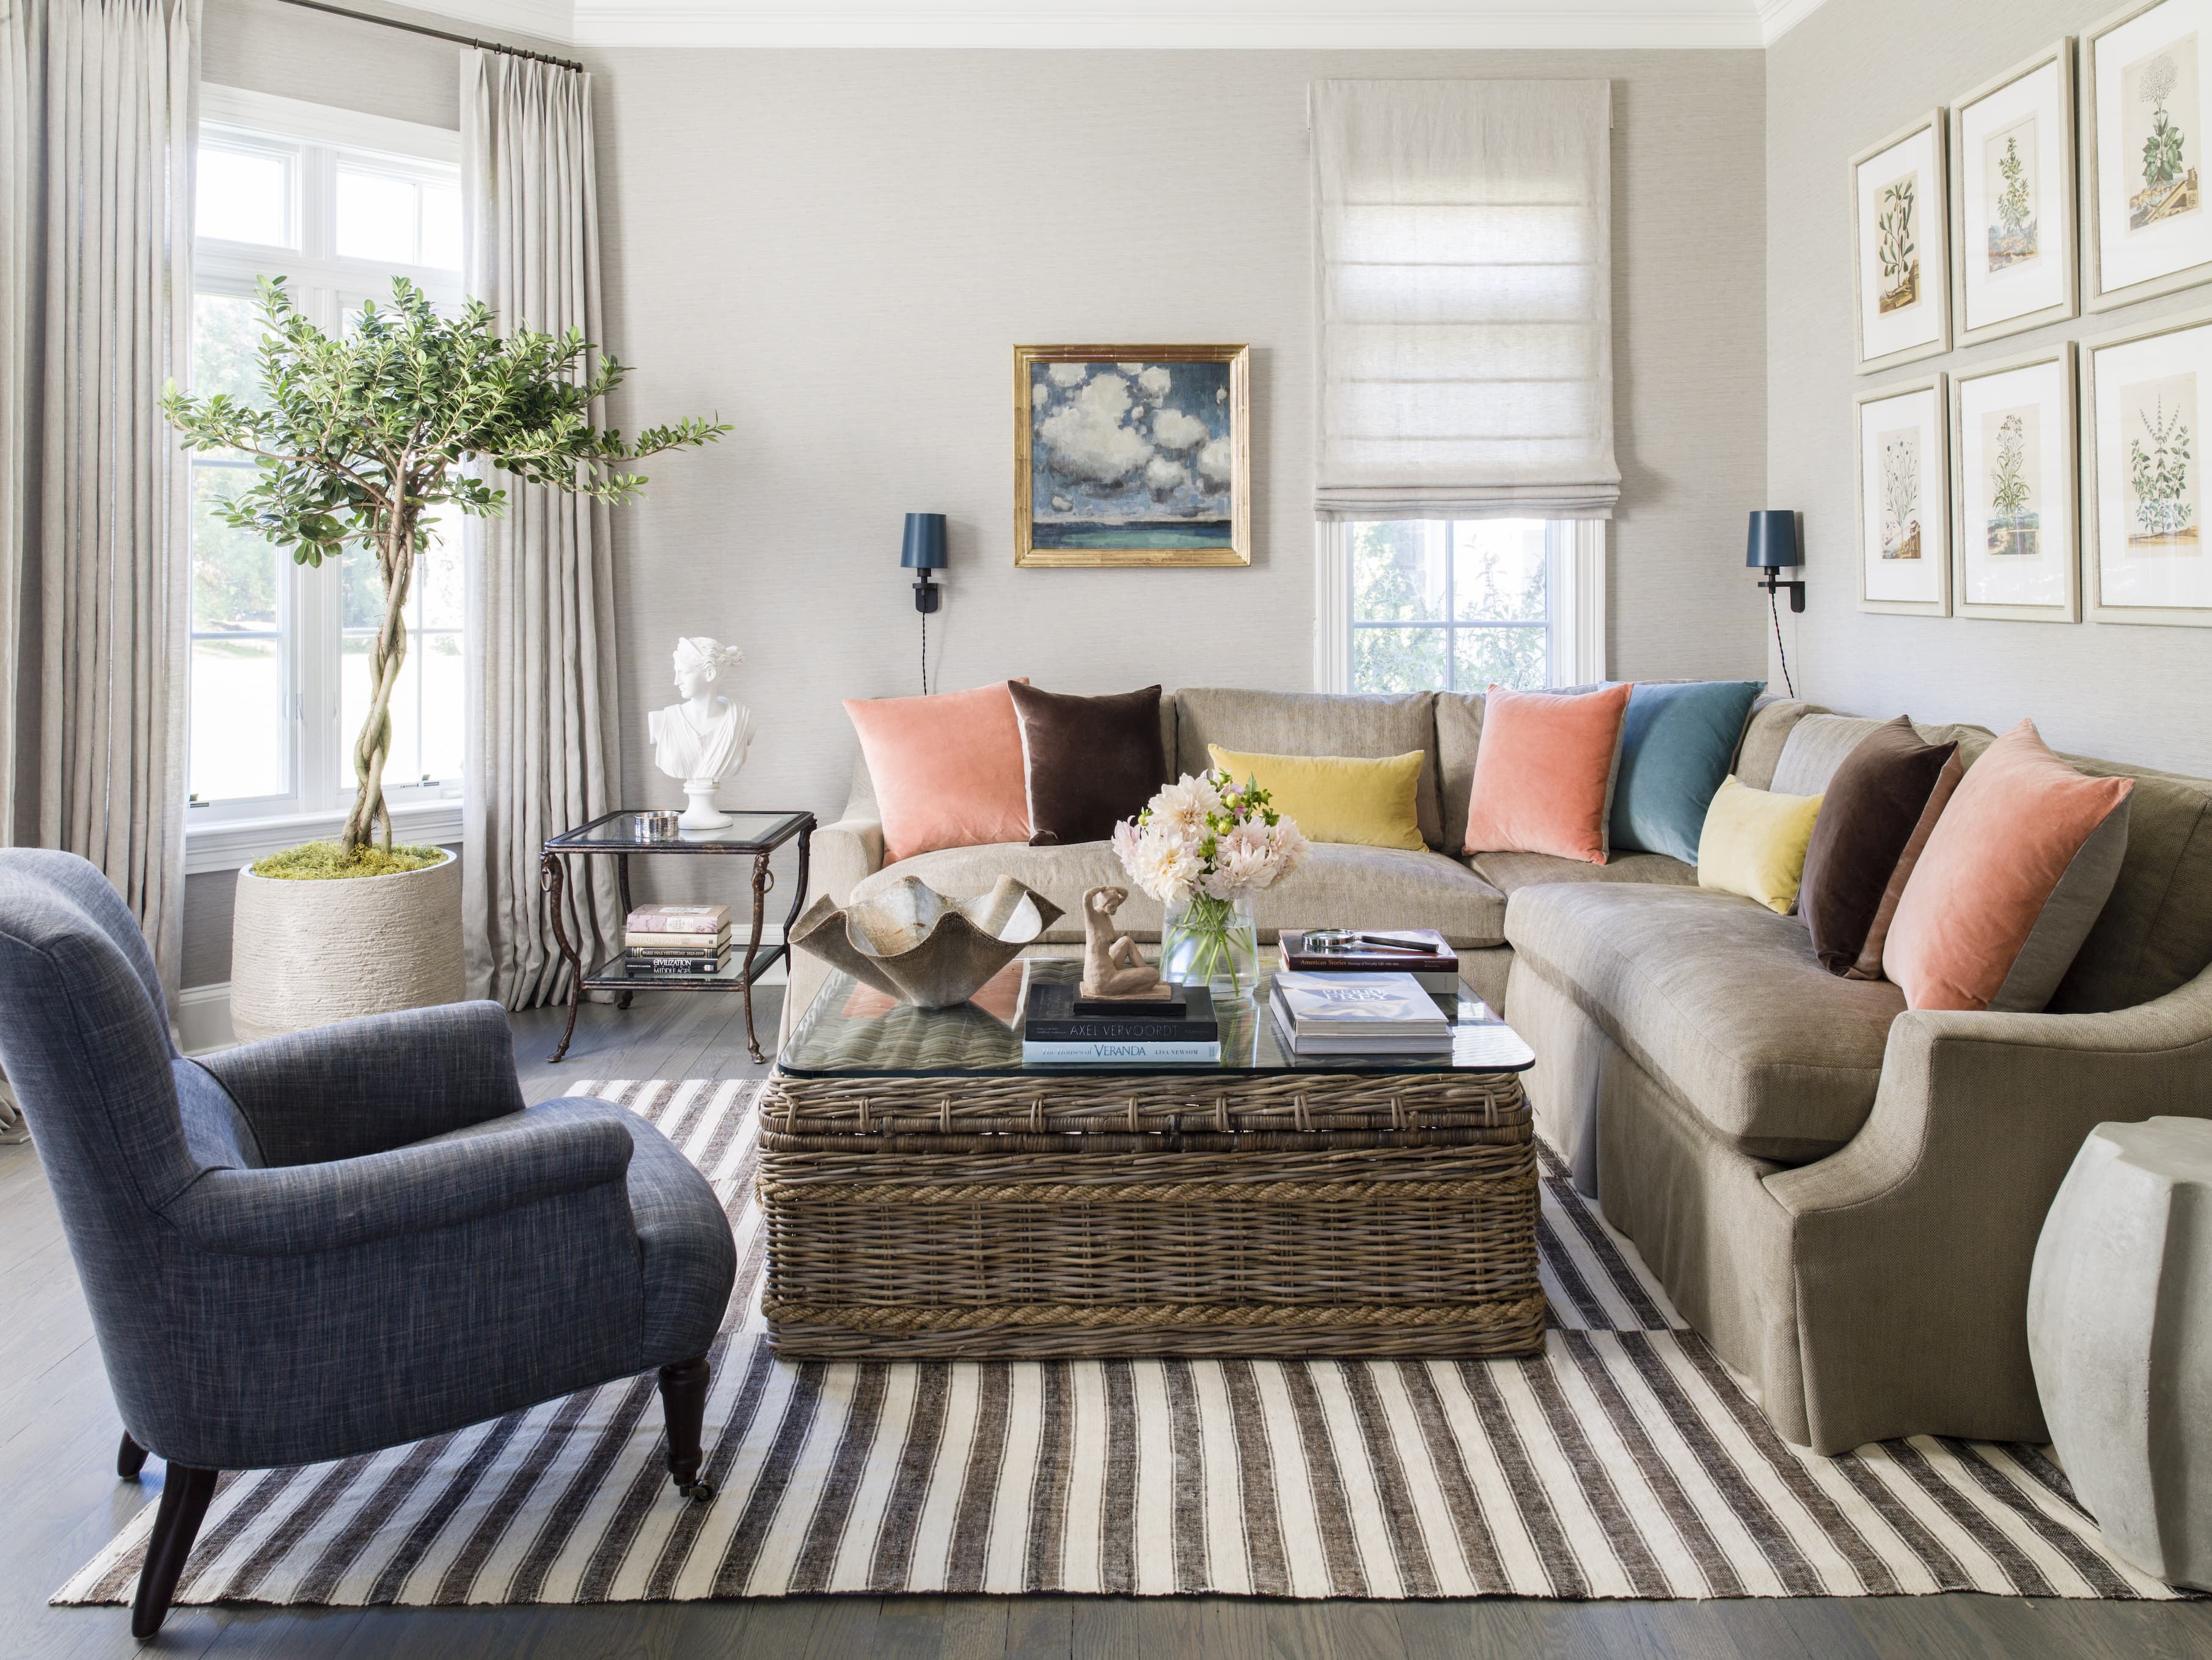 Living room with large sectional holding colorful pillows, a coffee table with books and fresh flowers, and a lounge chair.